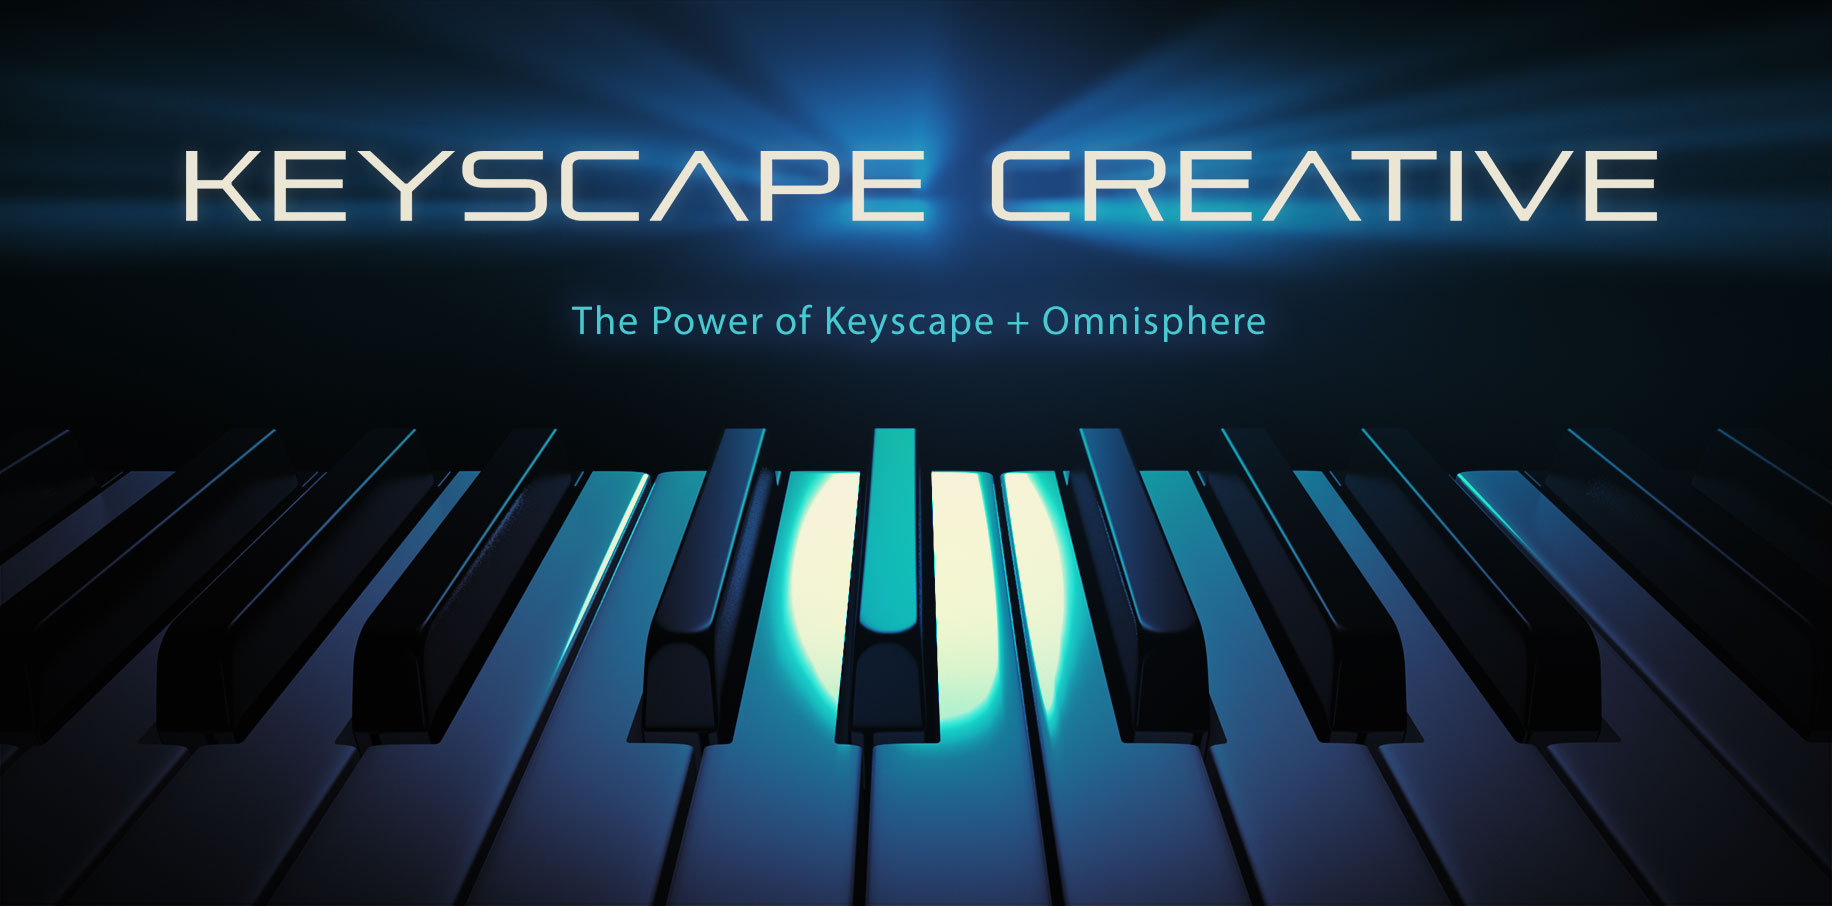 20170121_namm2017_sp_main-keyscapecreative-article